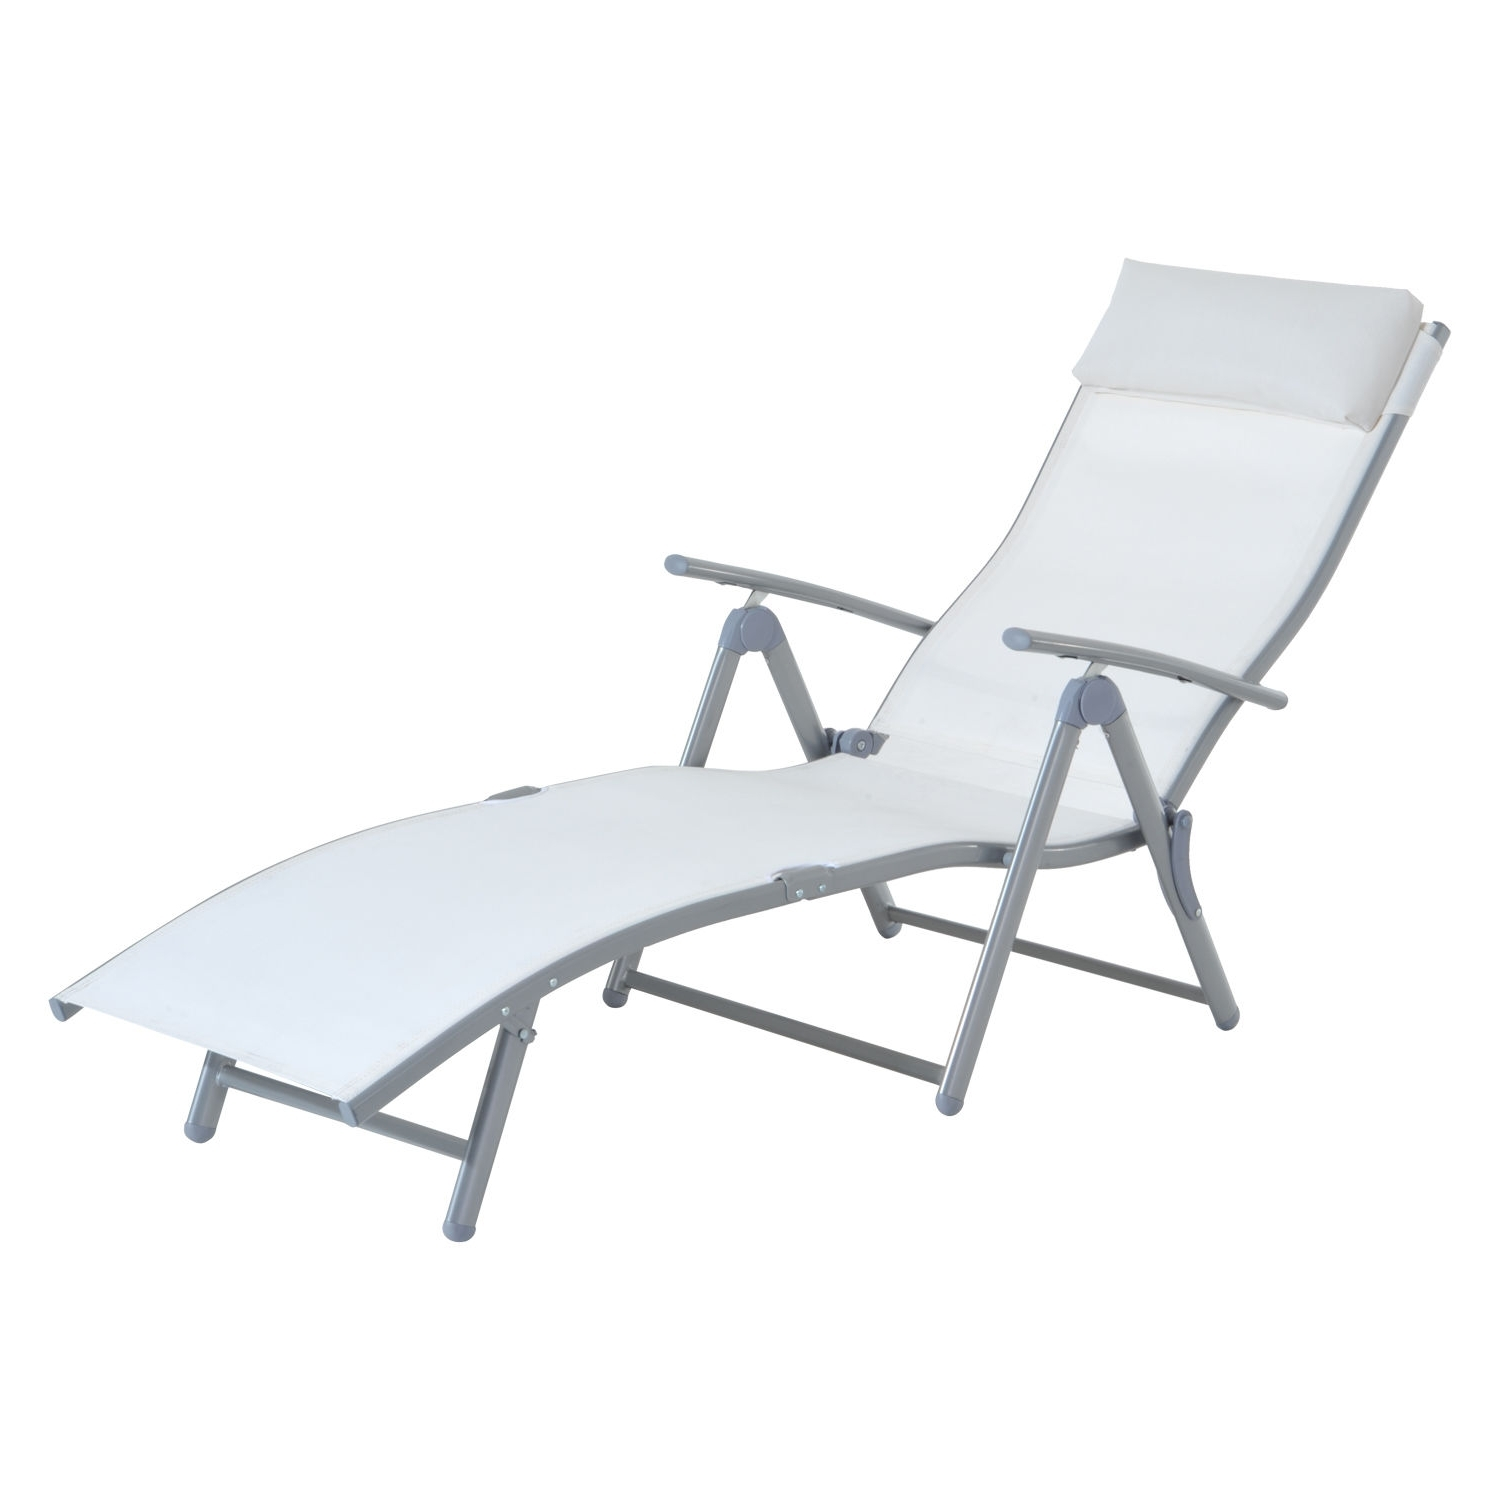 Outdoor : Lowes Chaise Lounge Indoor Outdoor Chaise Lounge Chairs Within Trendy Vinyl Outdoor Chaise Lounge Chairs (View 5 of 15)